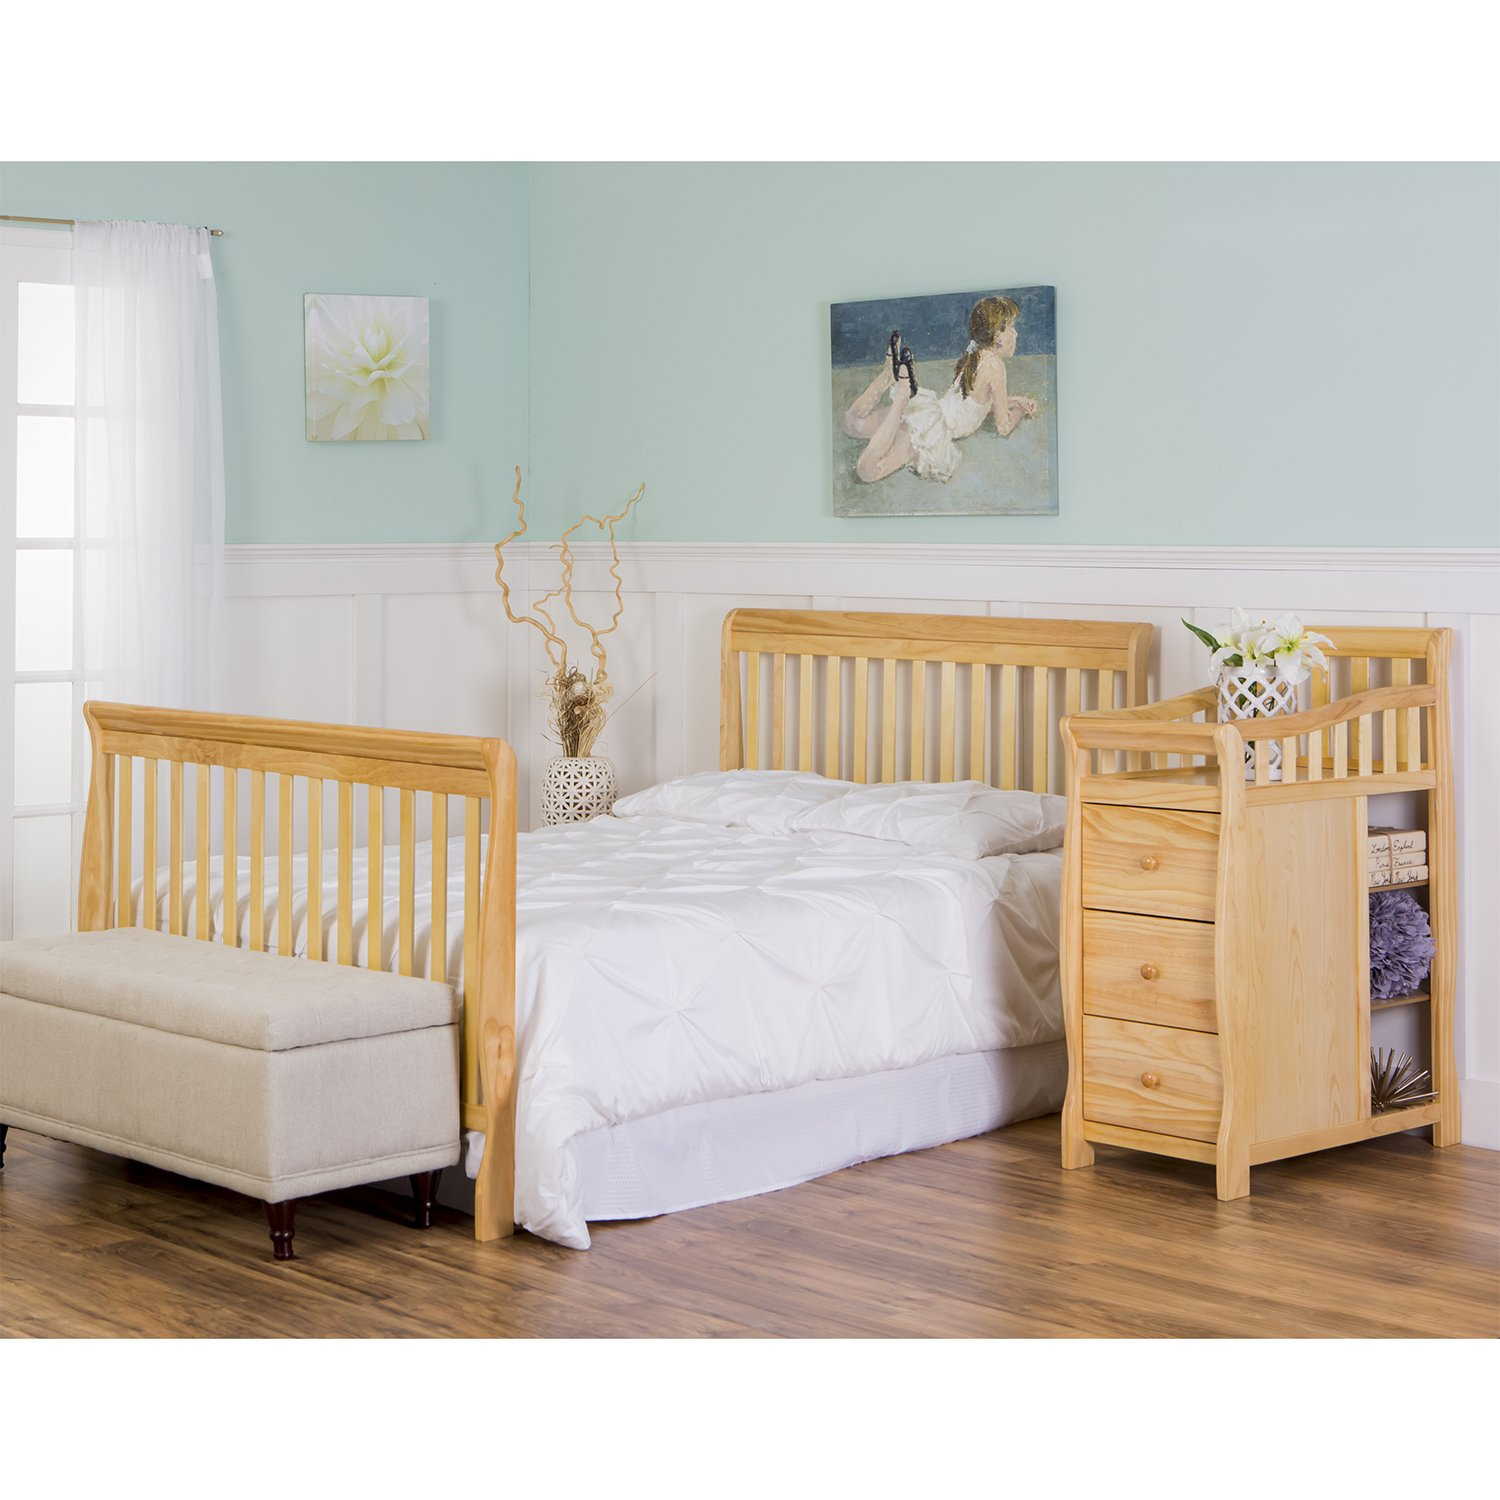 Dream On Me 5 in 1 Brody Convertible Crib with Changer, Natural by Dream On Me (Image #7)